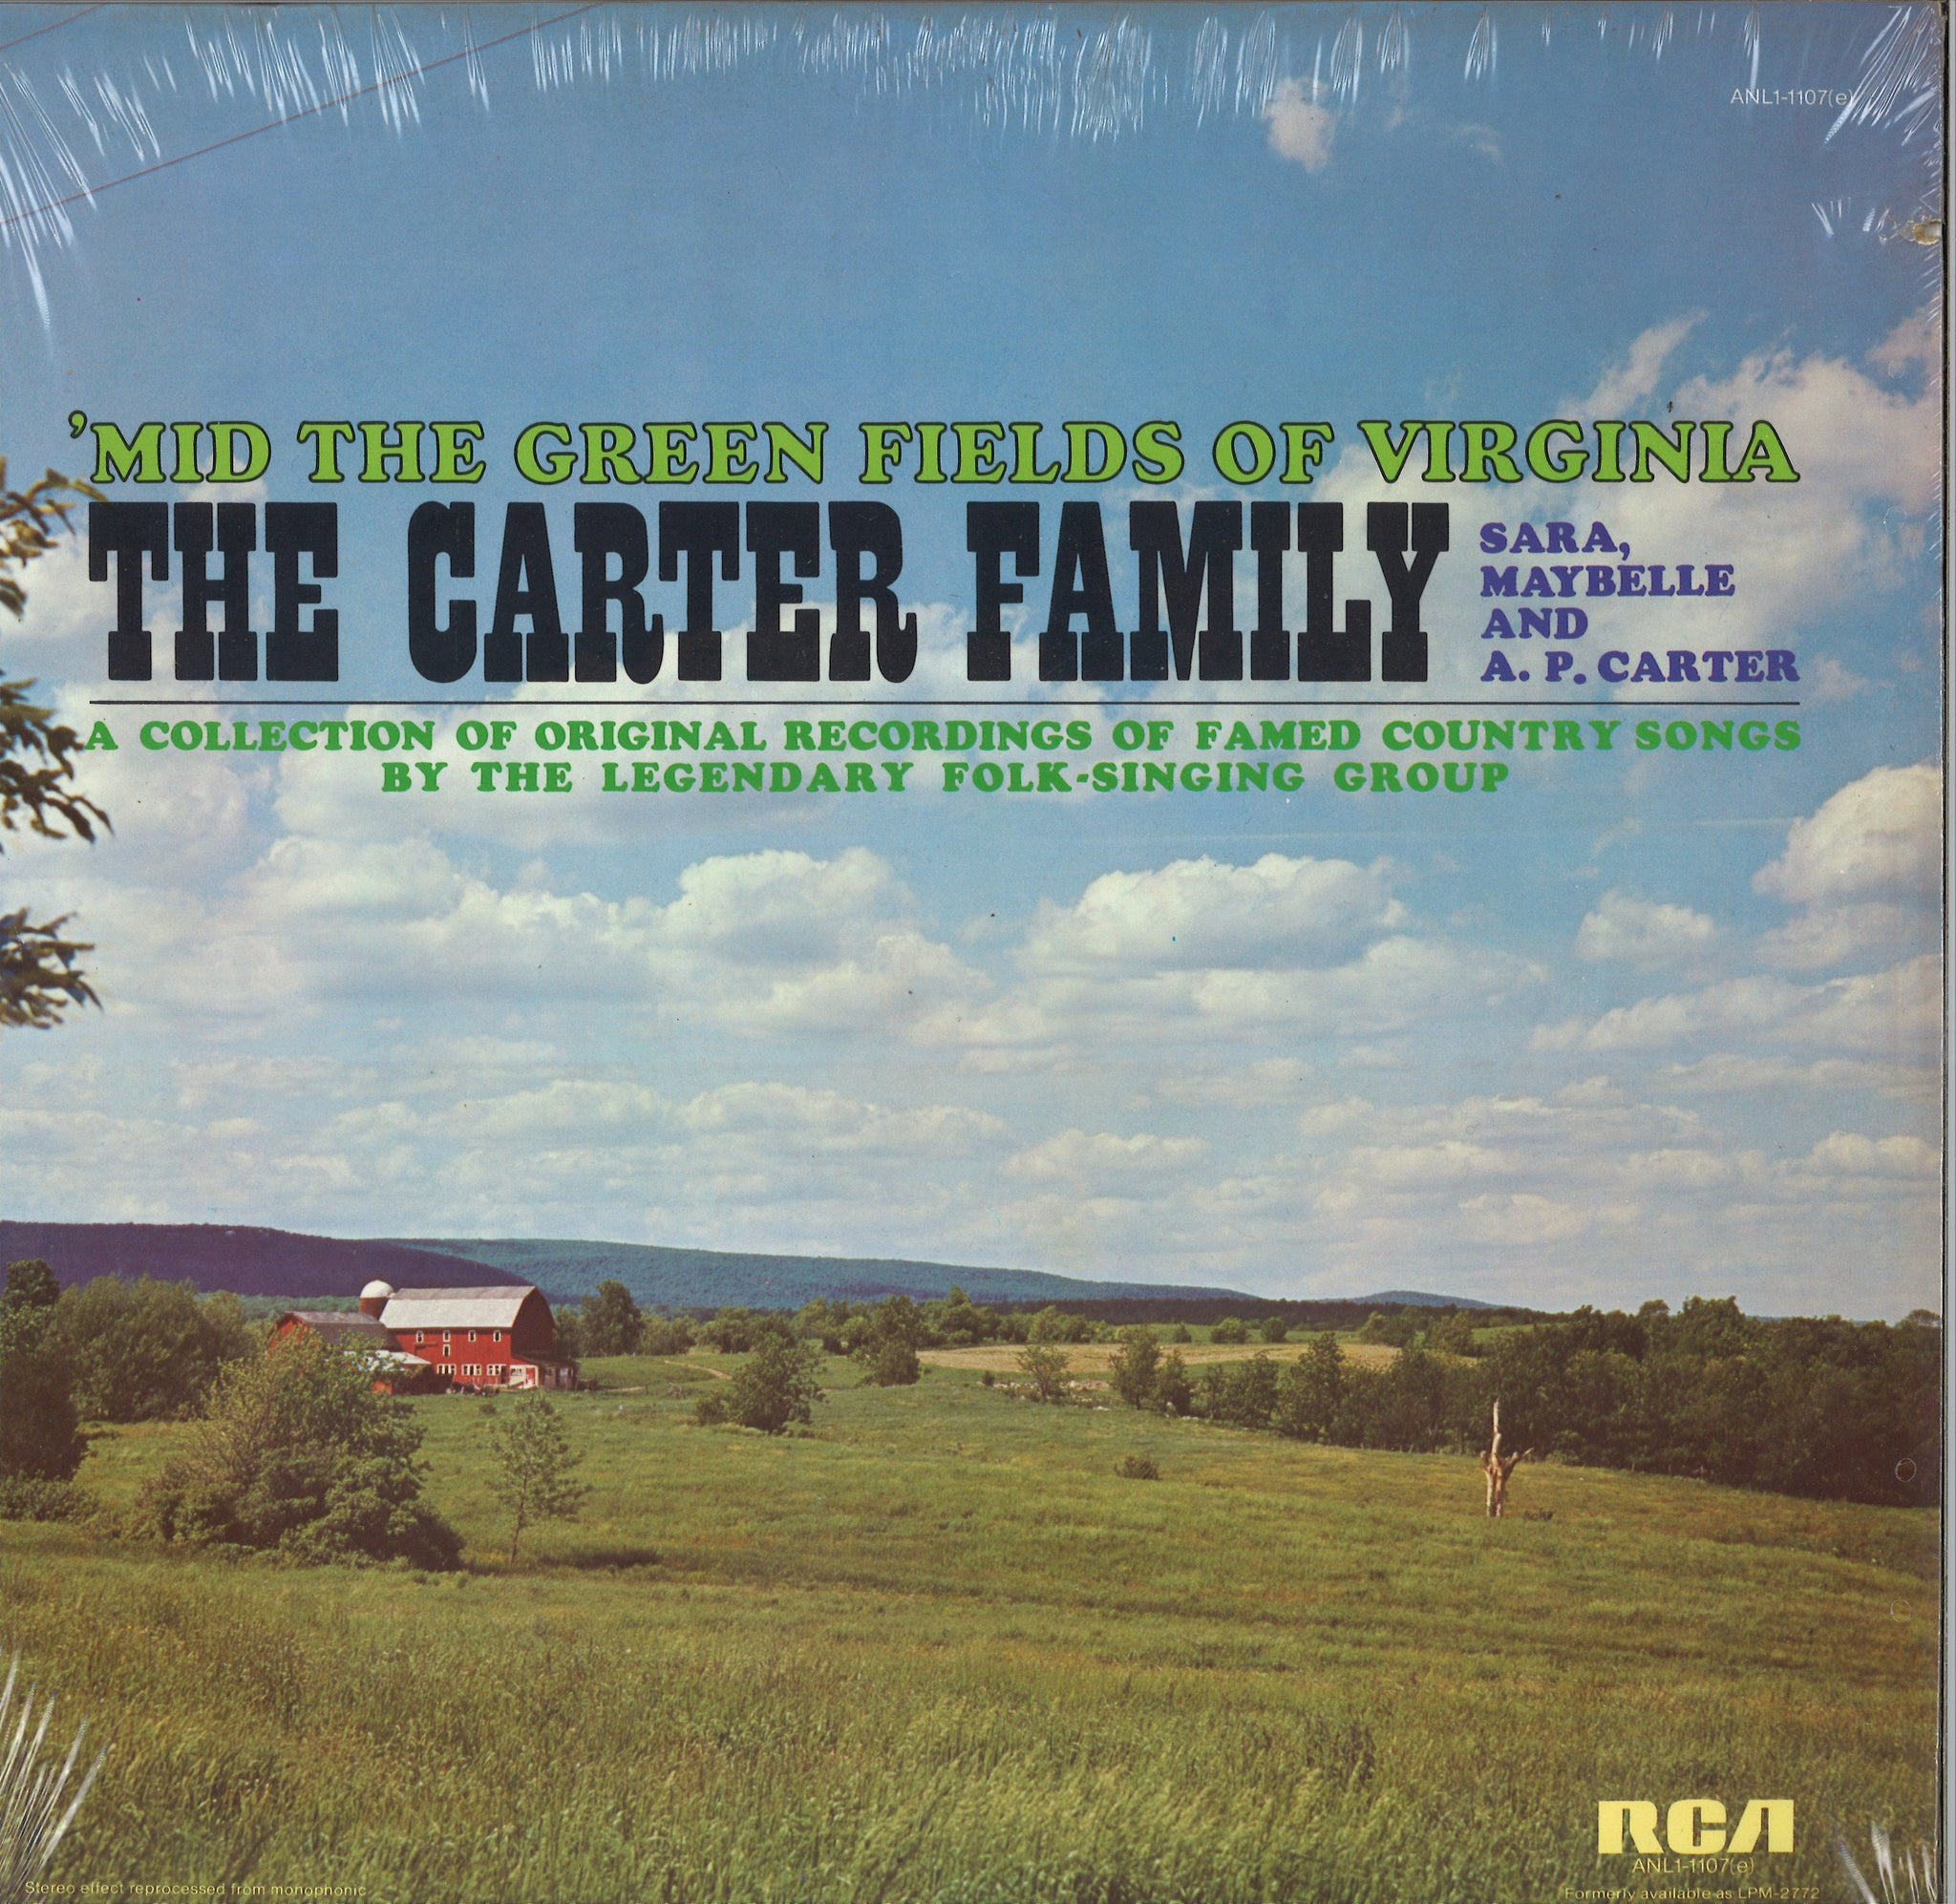 The Carter Family 'Mid The Green Fields Of Virginia